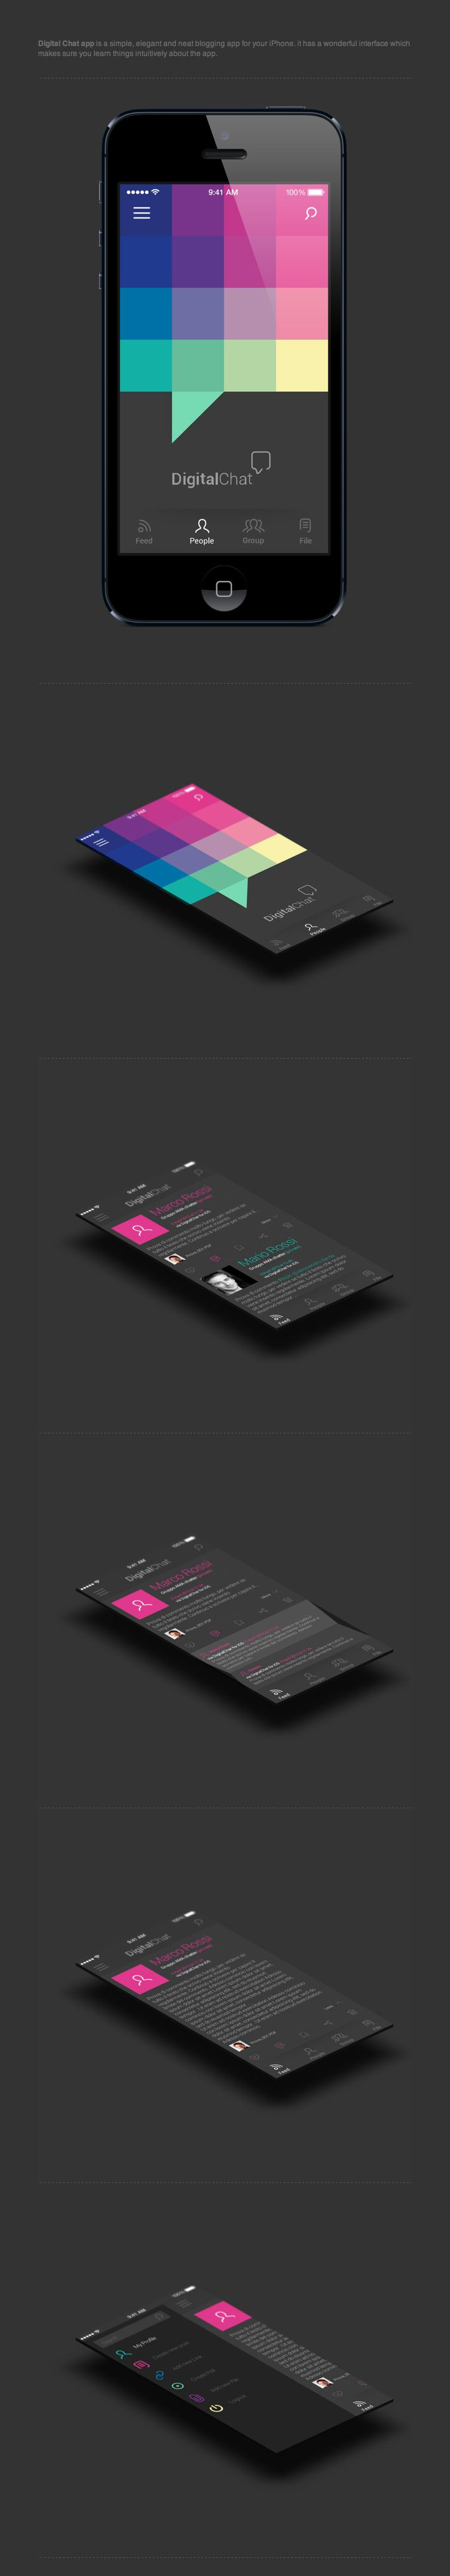 Digital Chat - #UI #UX #Interface #Mobile…